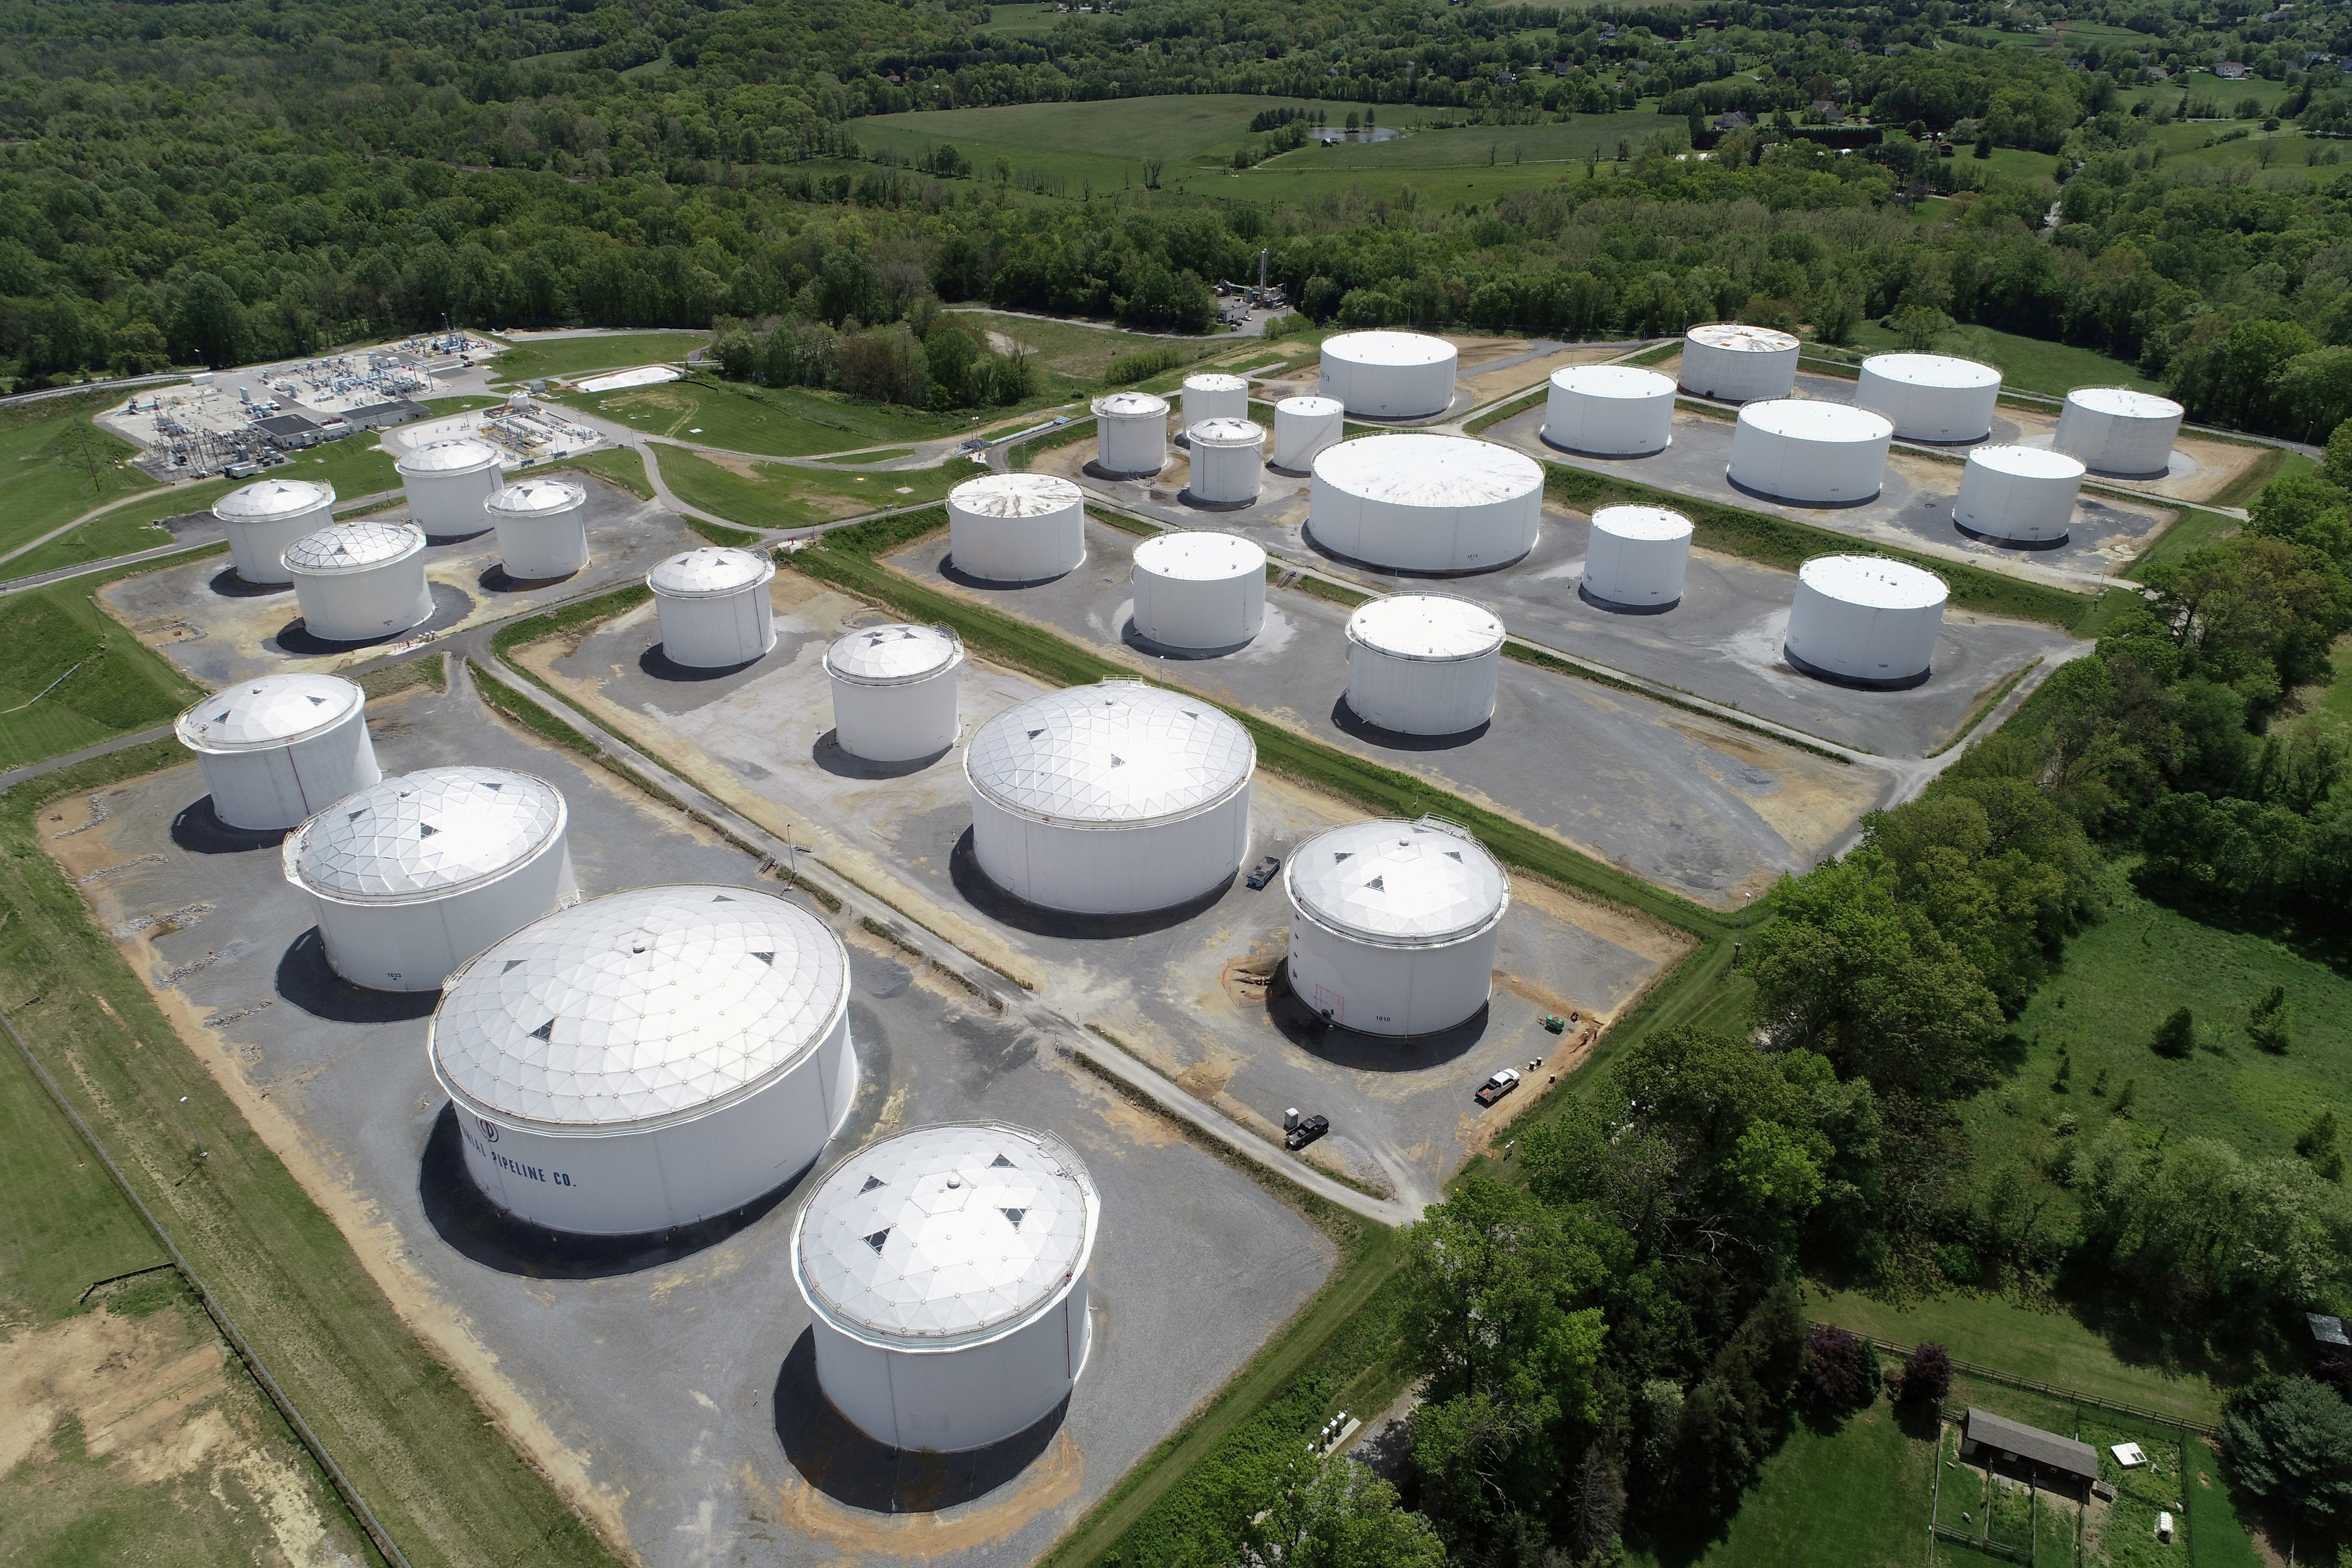 Holding tanks are seen in an aerial photograph at Colonial Pipeline's Dorsey Junction Station in Woodbine, Maryland, U.S. May 10, 2021. REUTERS/Drone Base/File Photo